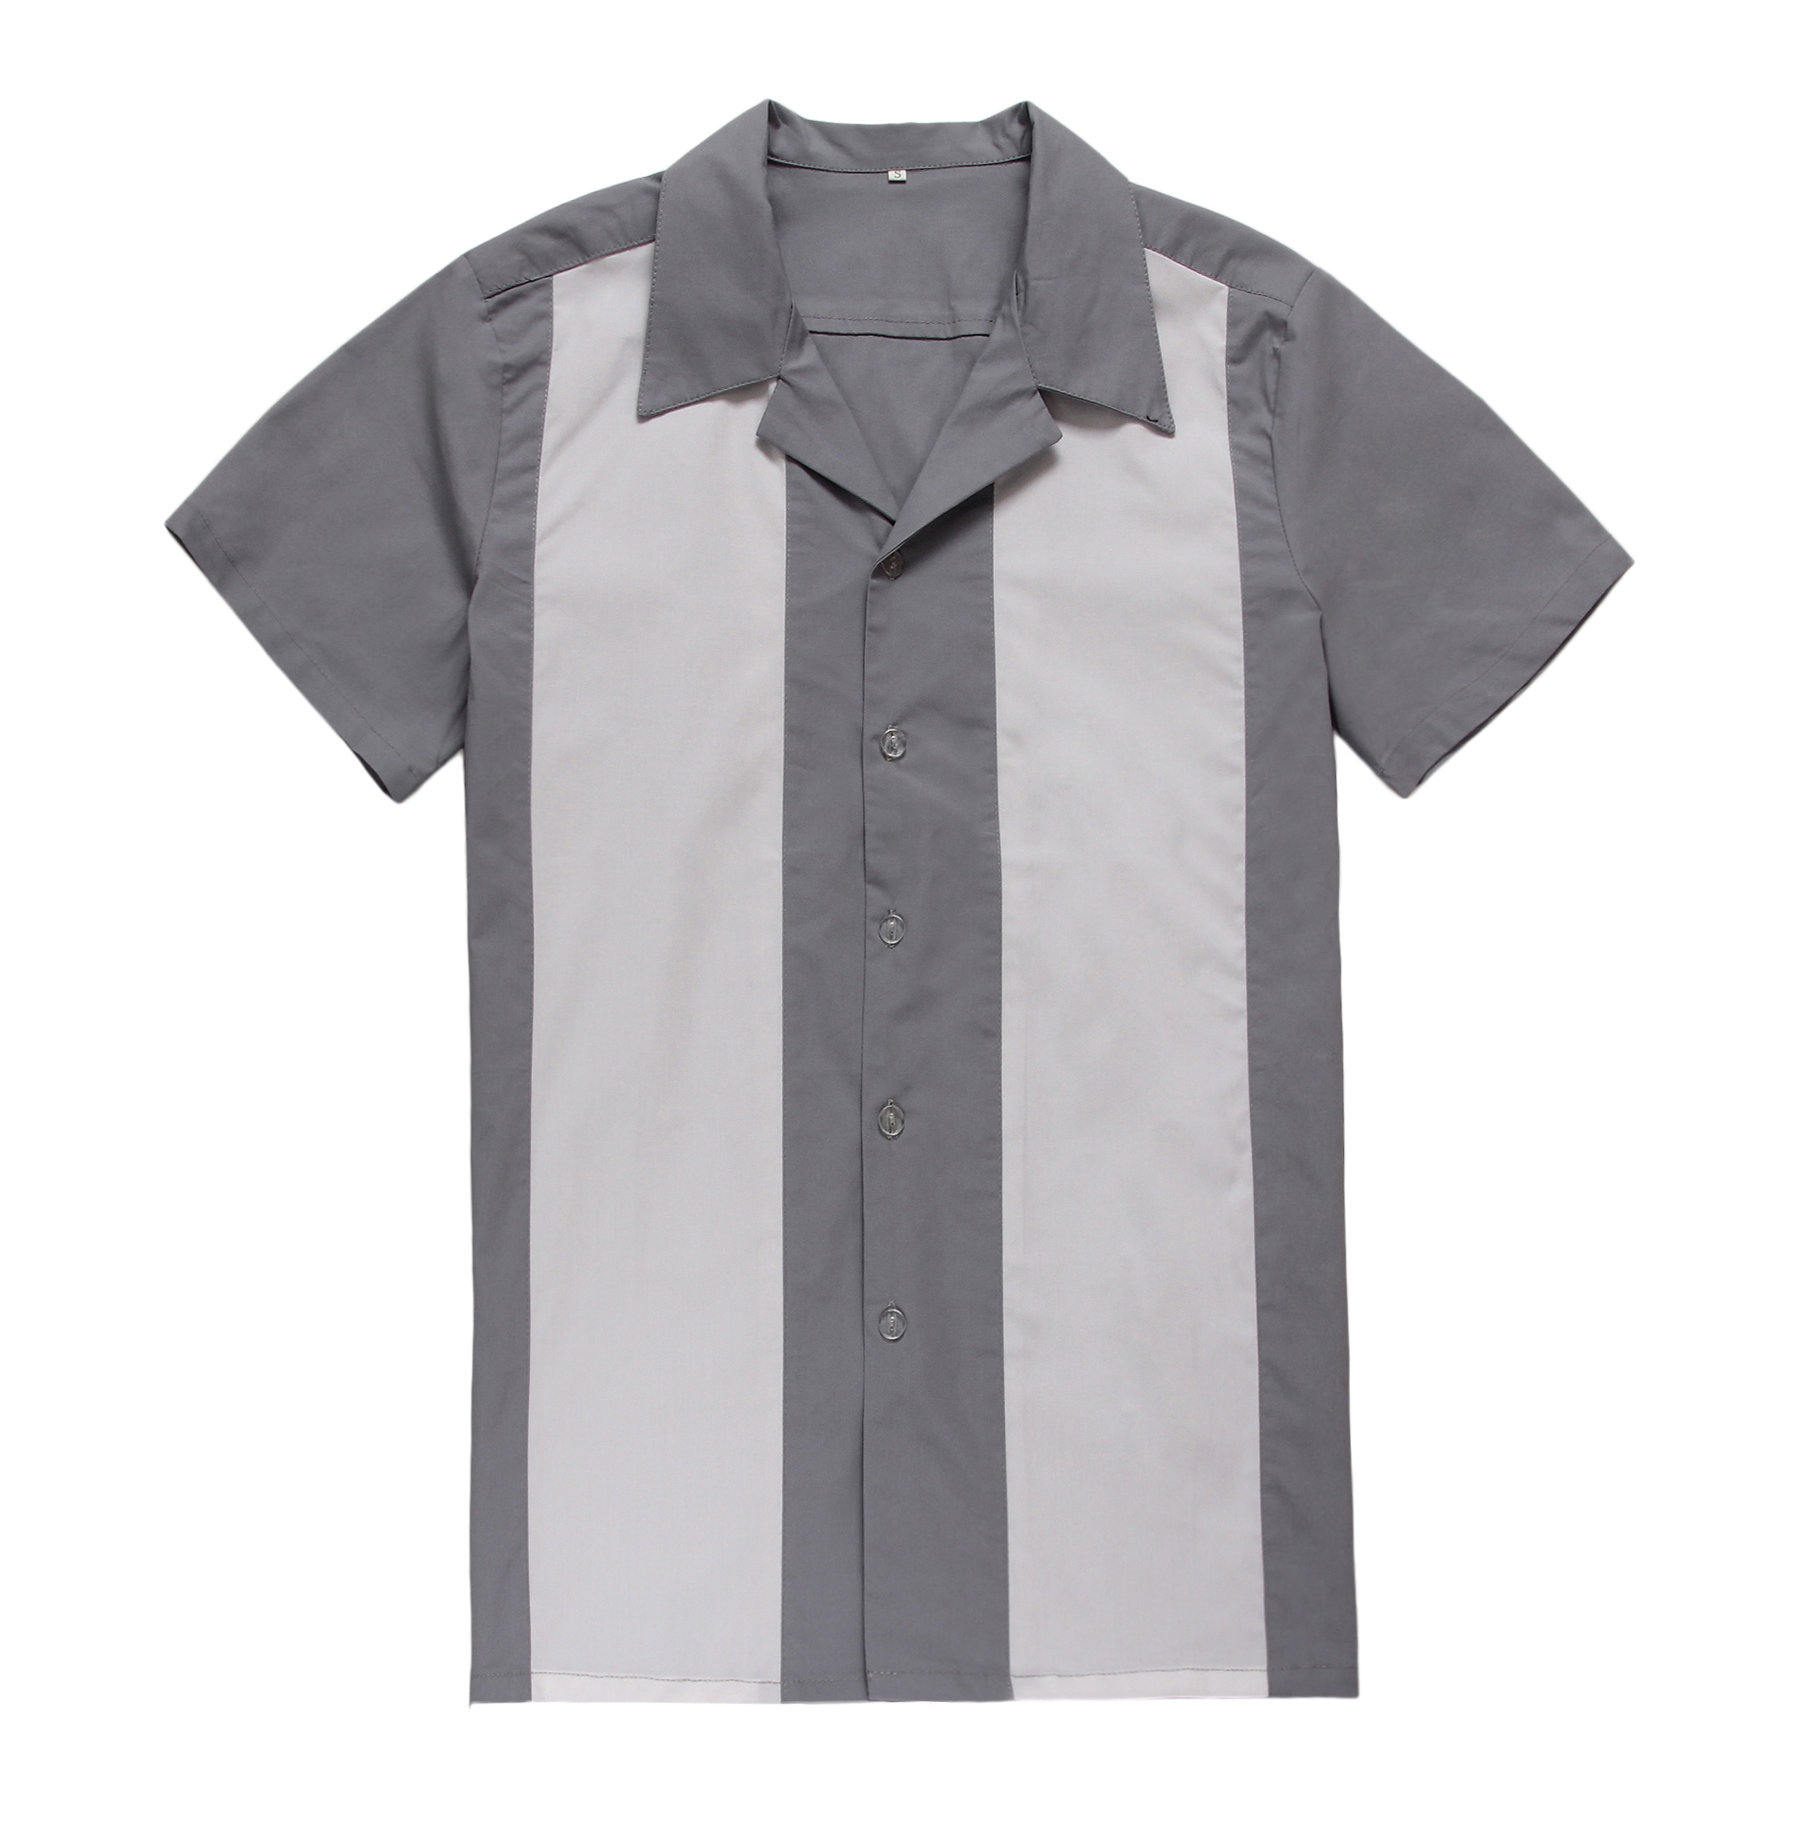 Compare Prices on Shop Work Shirts- Online Shopping/Buy Low Price ...